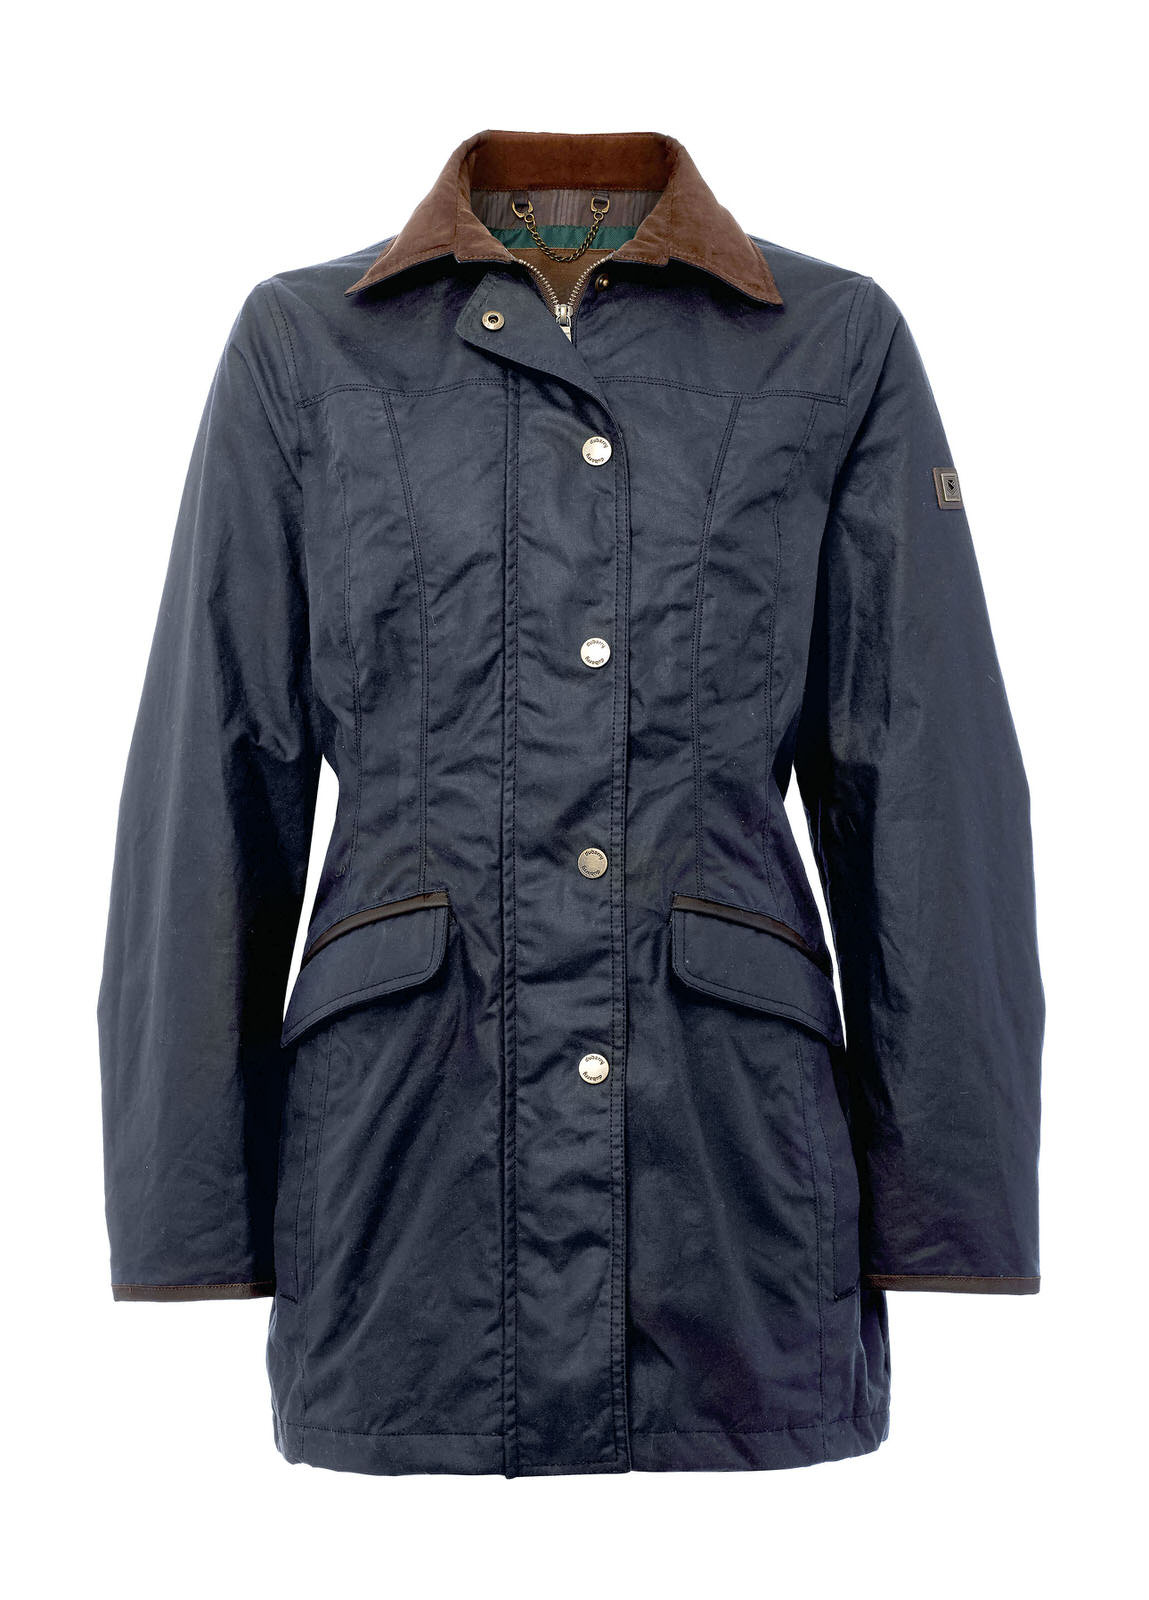 Baltray_Waxed_Jacket_Navy_Image_1